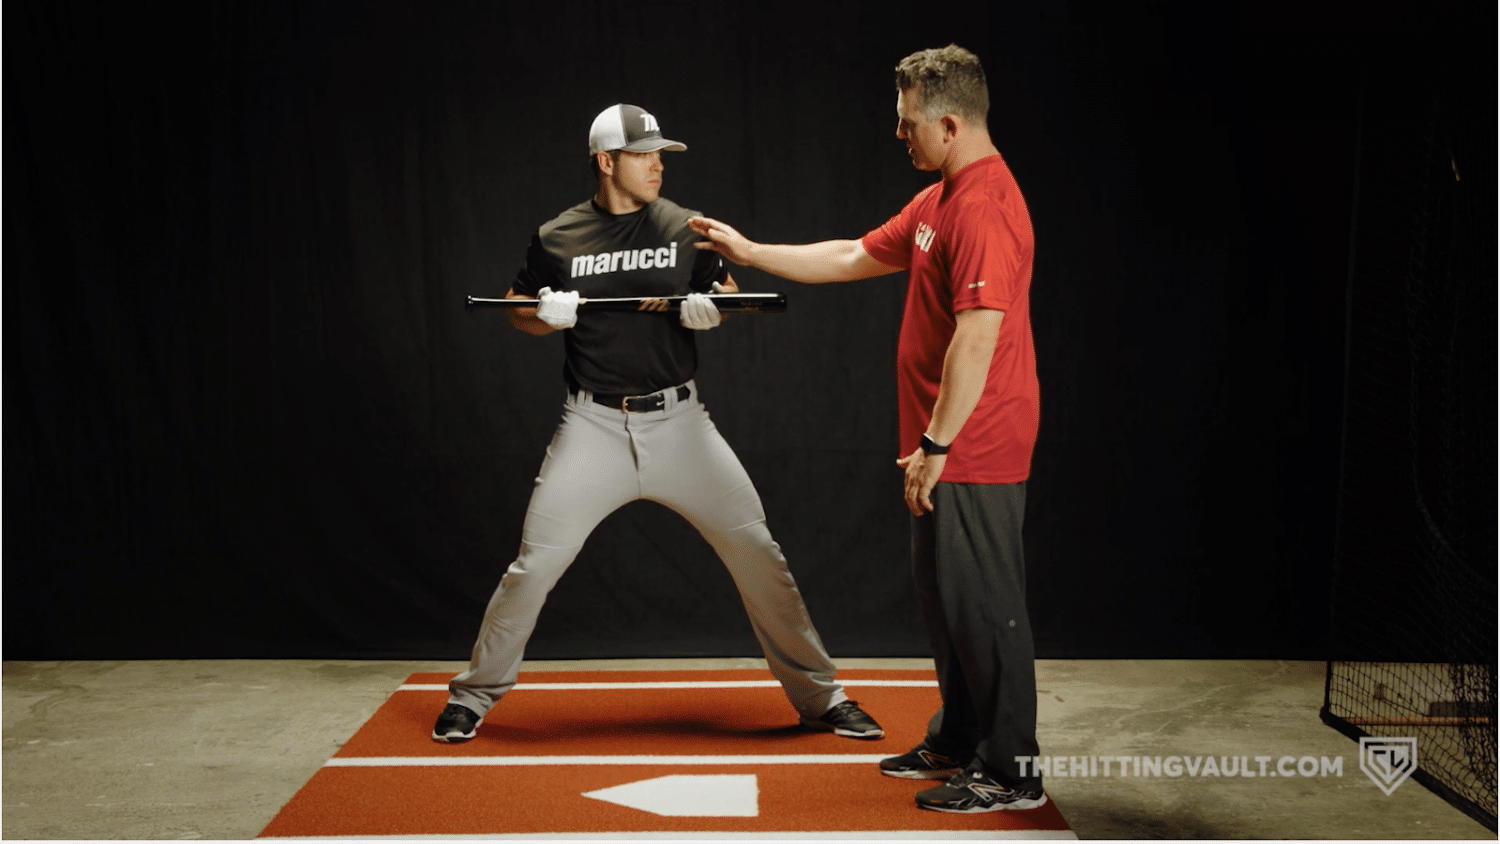 The Full Turn Drill - Hit the Baseball Harder